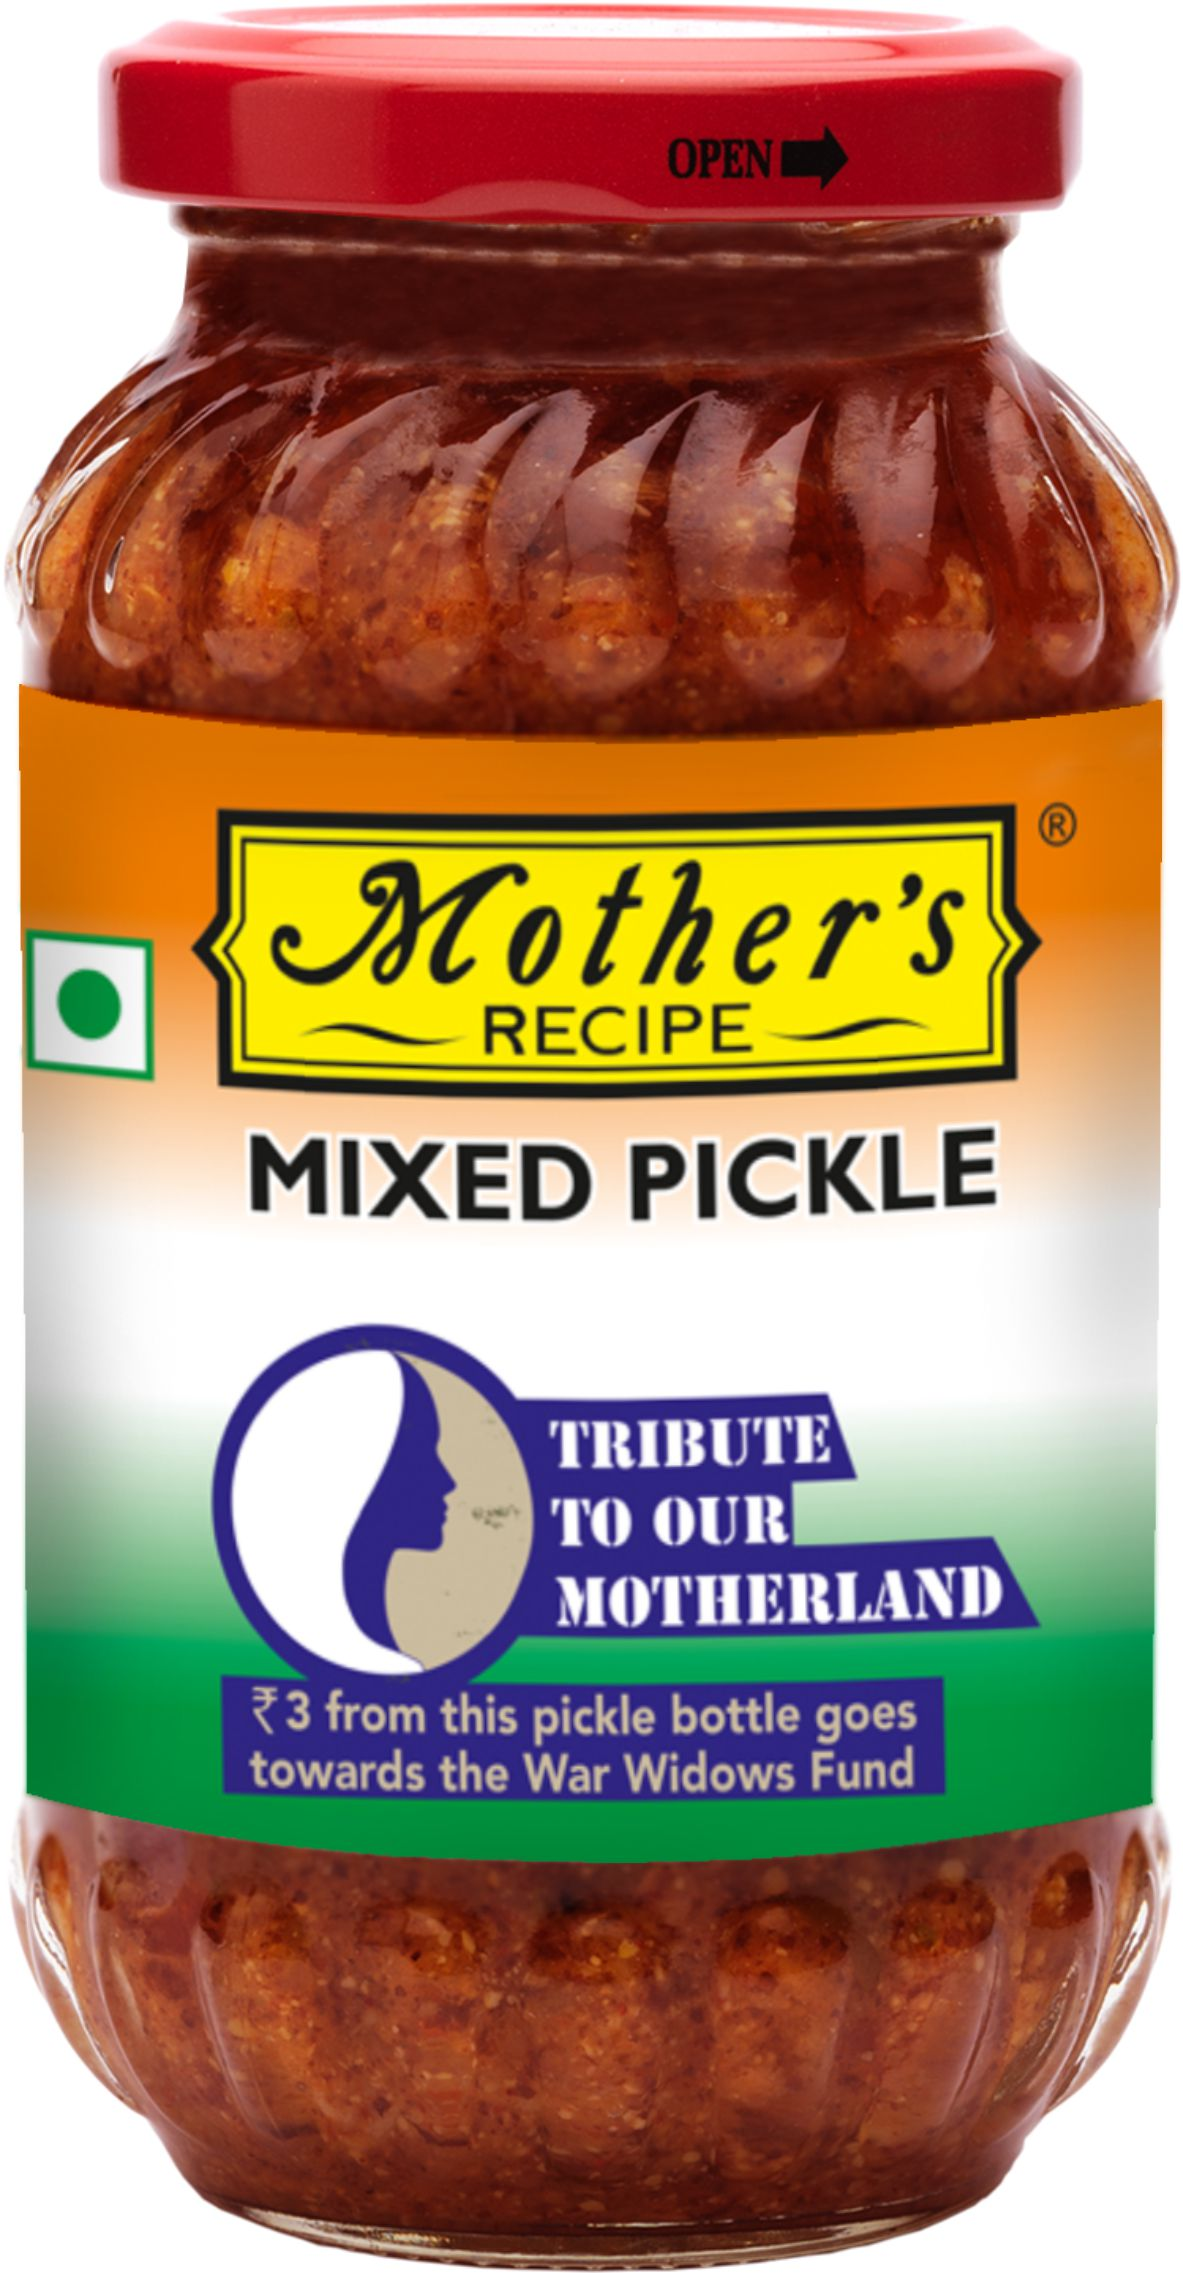 Photo_Mother's Recipe special edition Mixed Pickle to support its Tribute To Our Motherland campaign.jpg